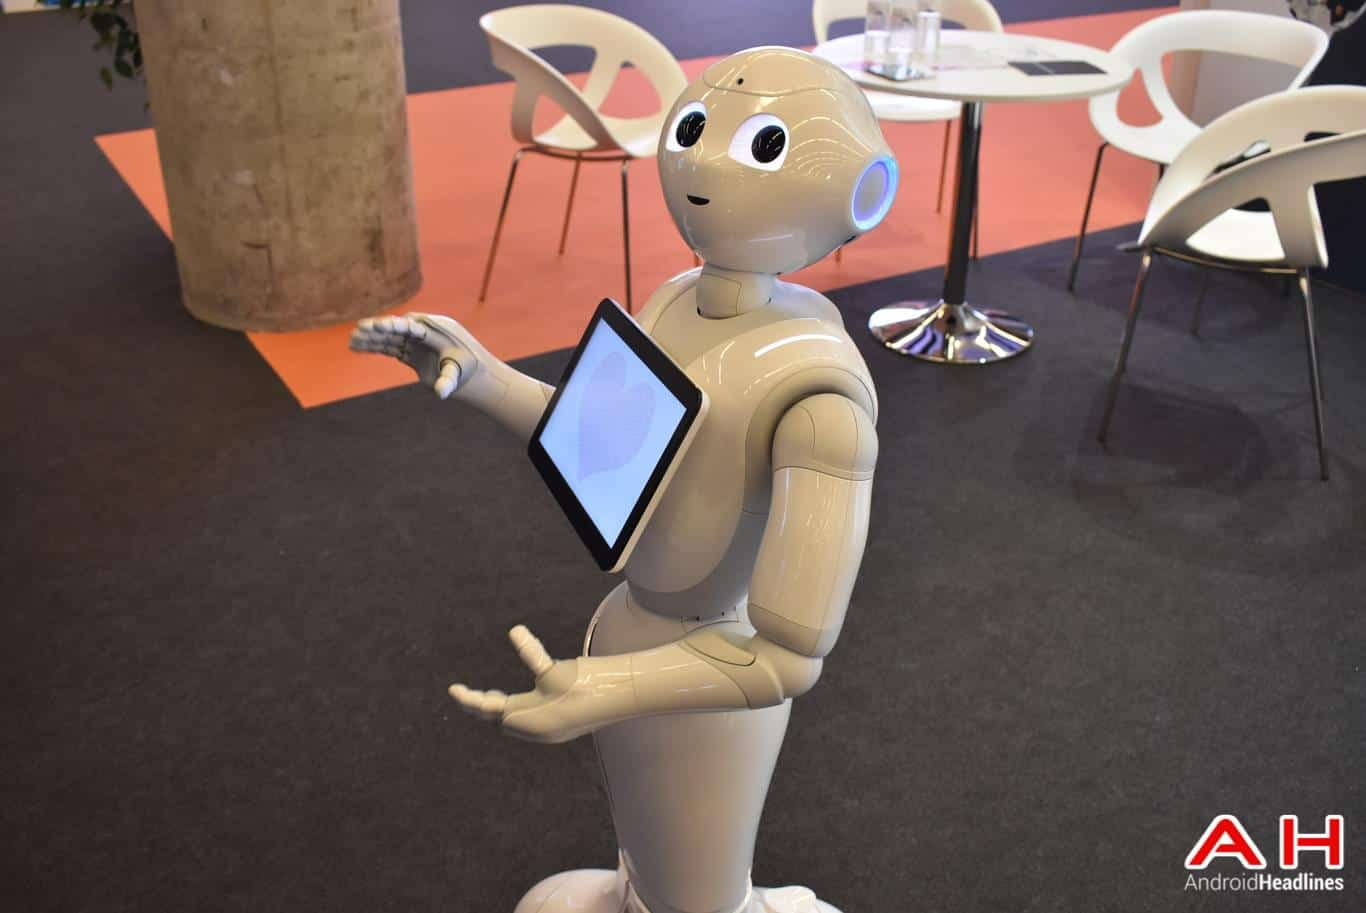 SoftBank Pepper Robot AH 11